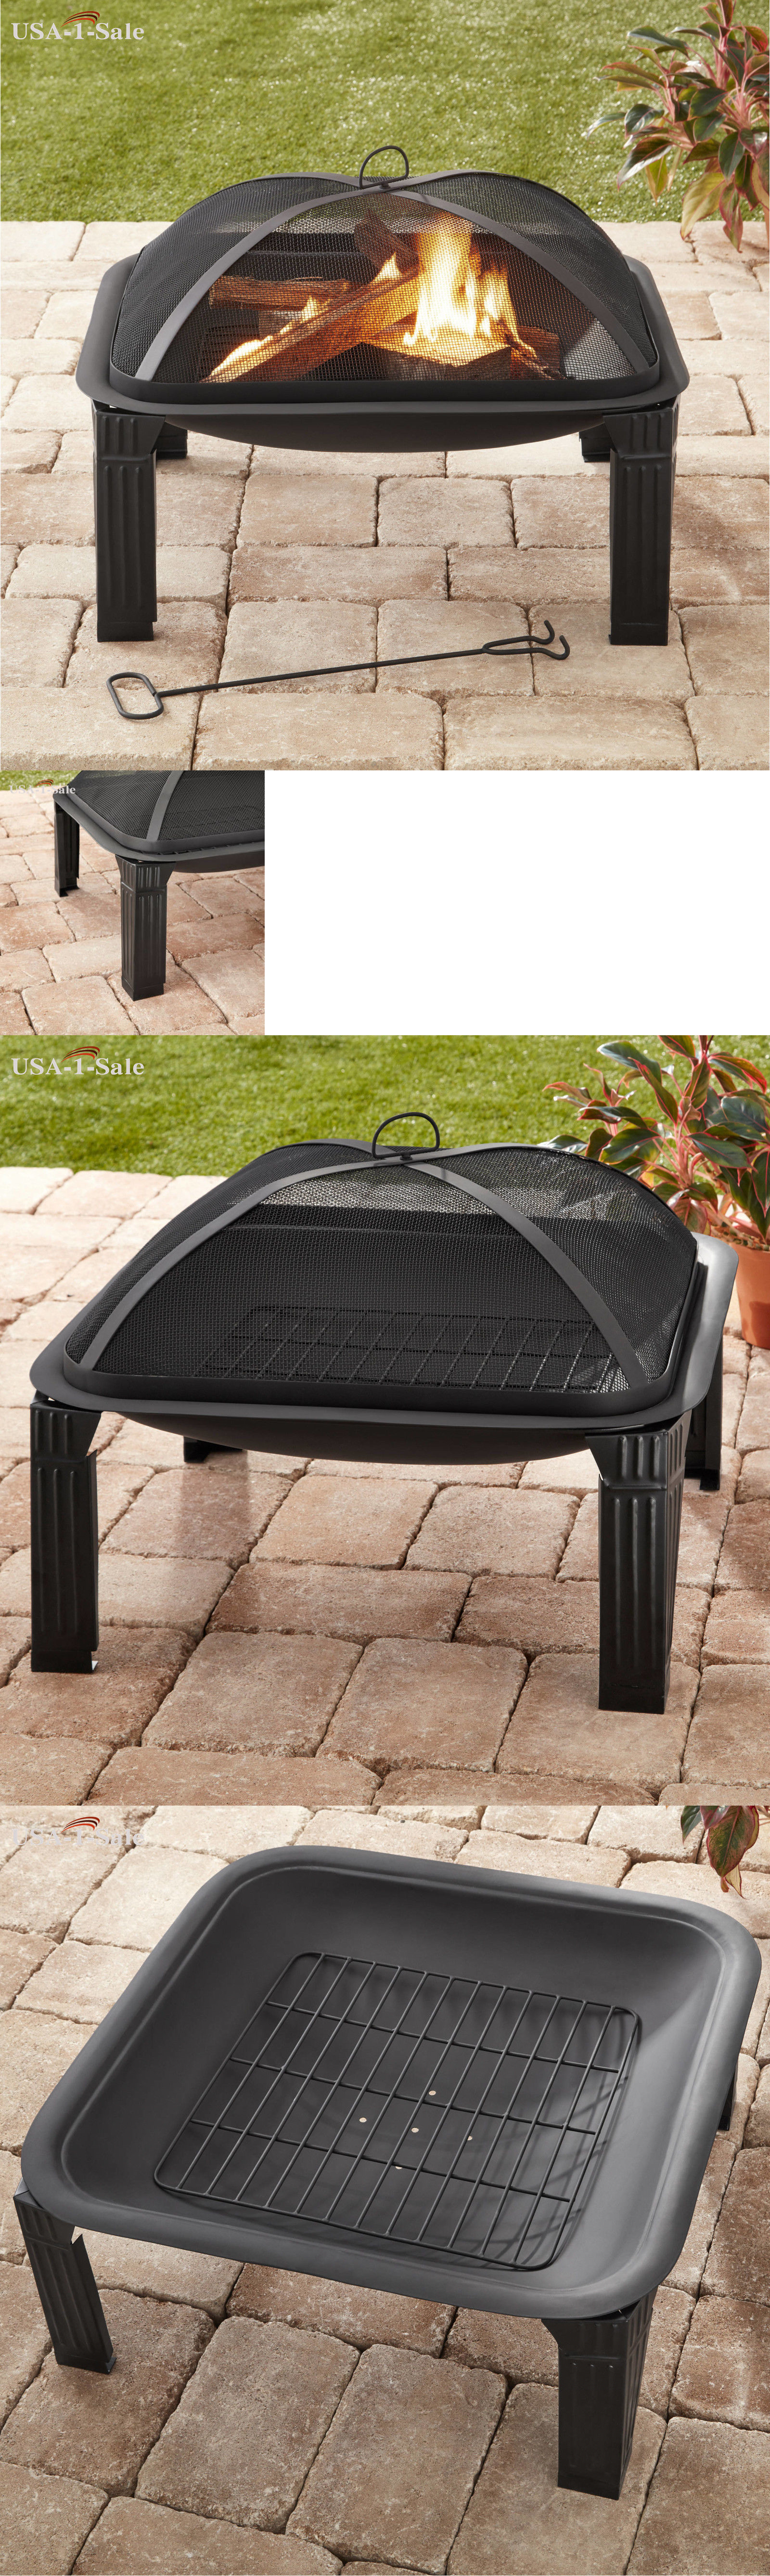 b88606badaa4831aade967f2d5d914bb Top Result 50 Awesome Steel Outdoor Fireplace Gallery 2018 Hiw6